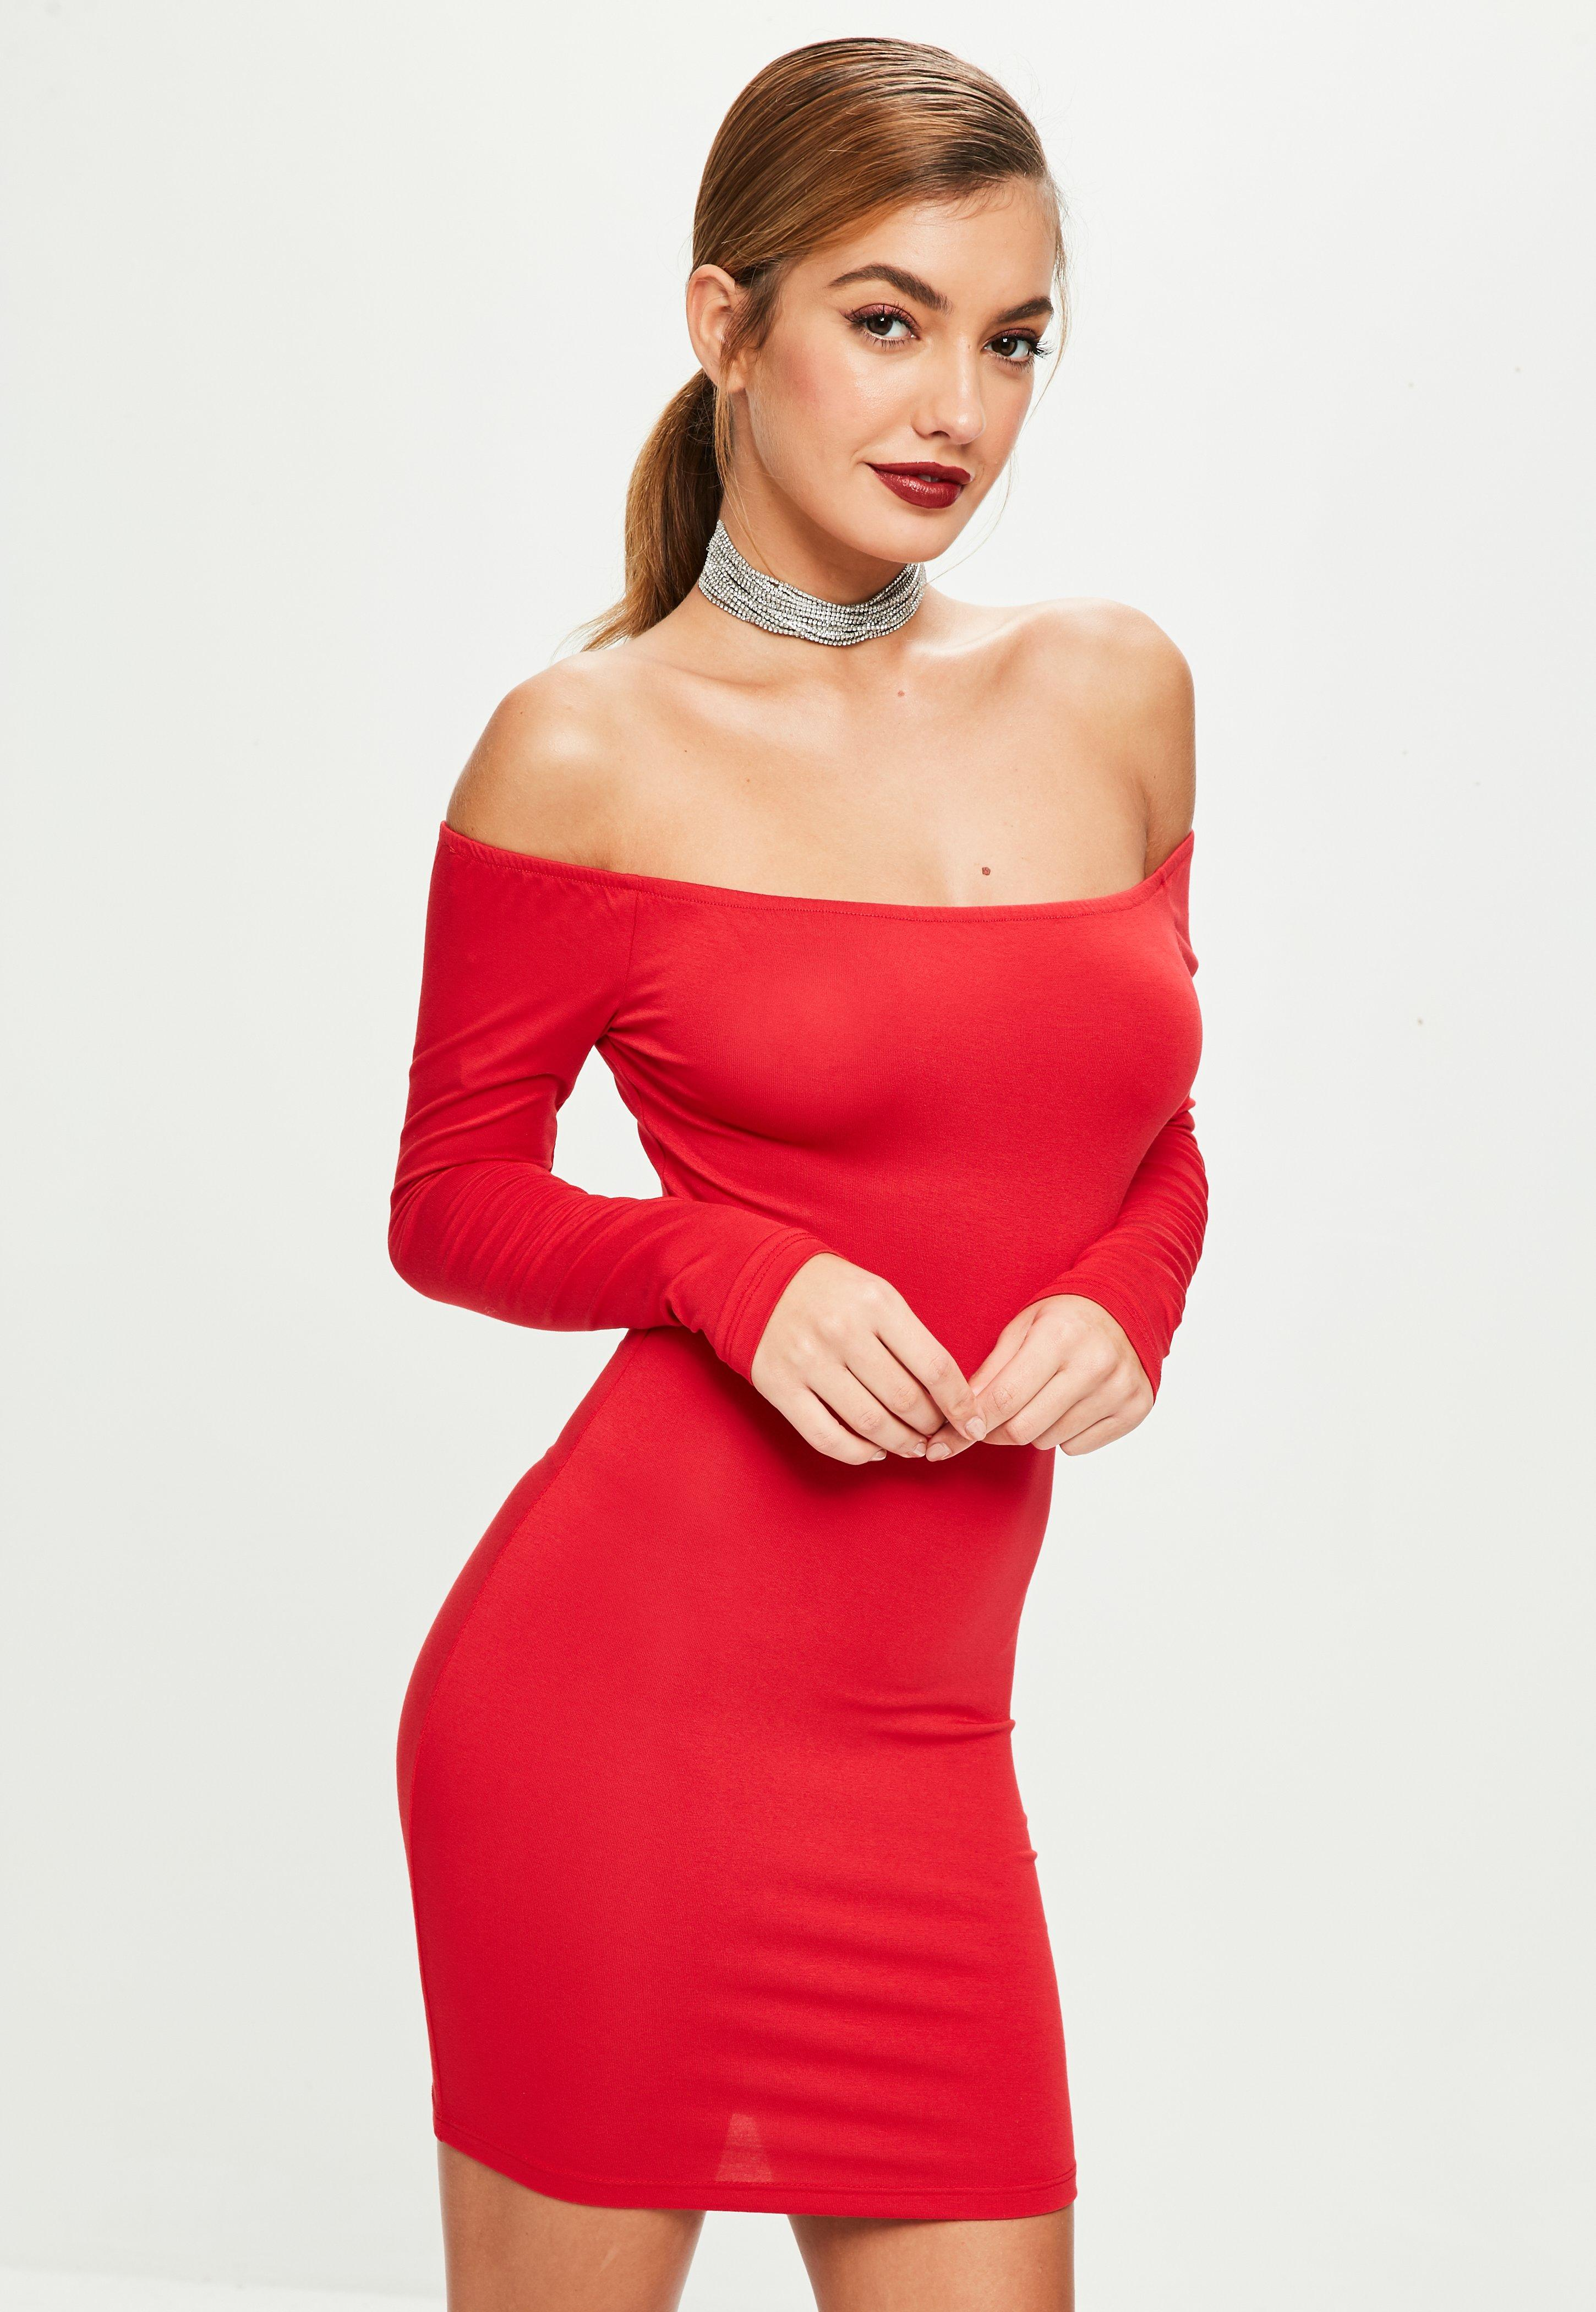 Strapless Dresses - Bandeau & Tube Top Dresses | Missguided